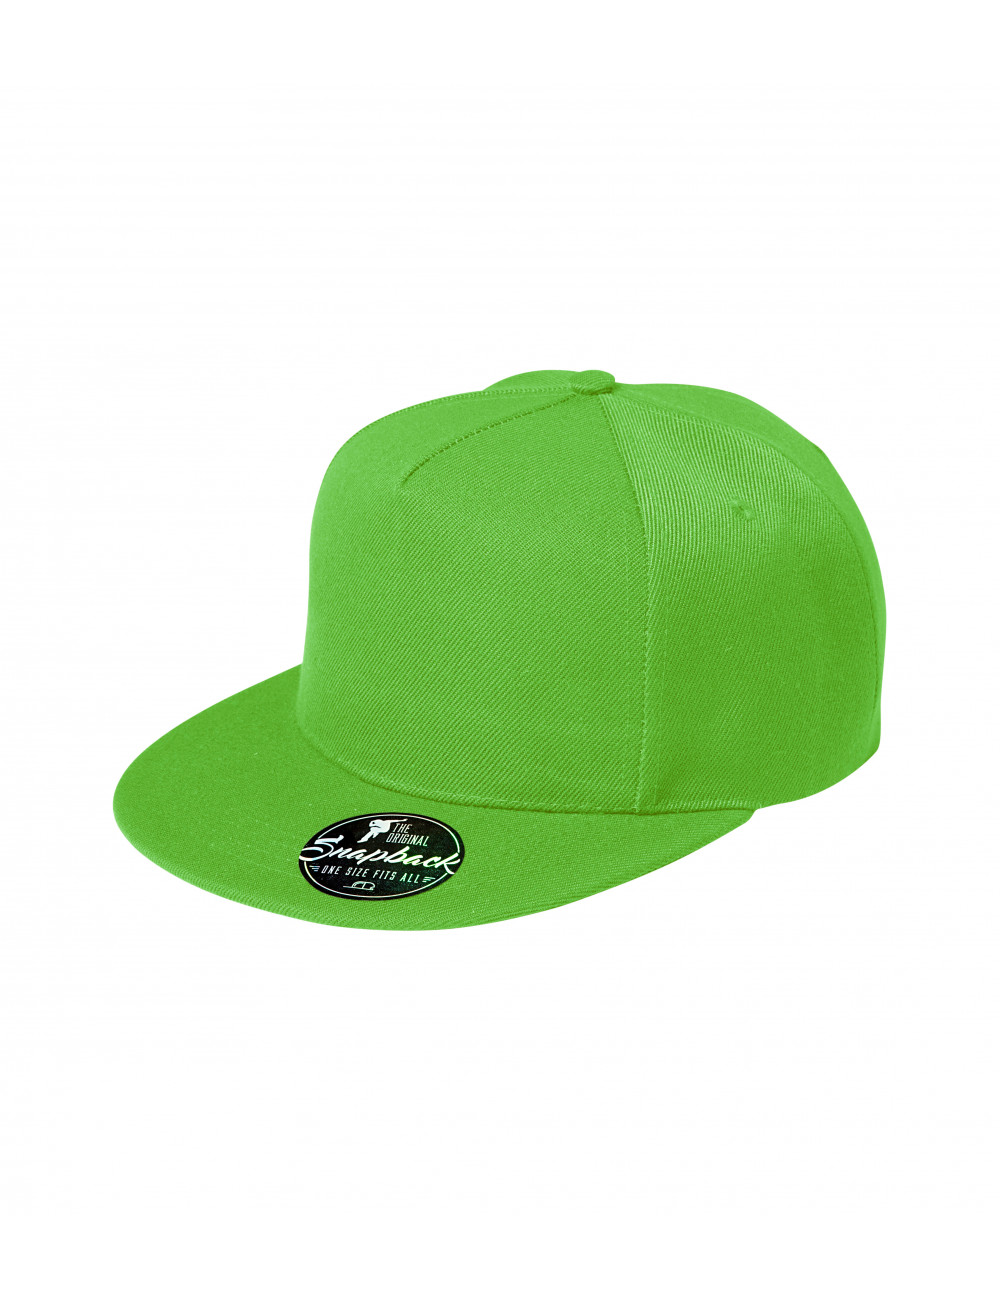 Adler MALFINI Czapka unisex Rap 5P 301 green apple